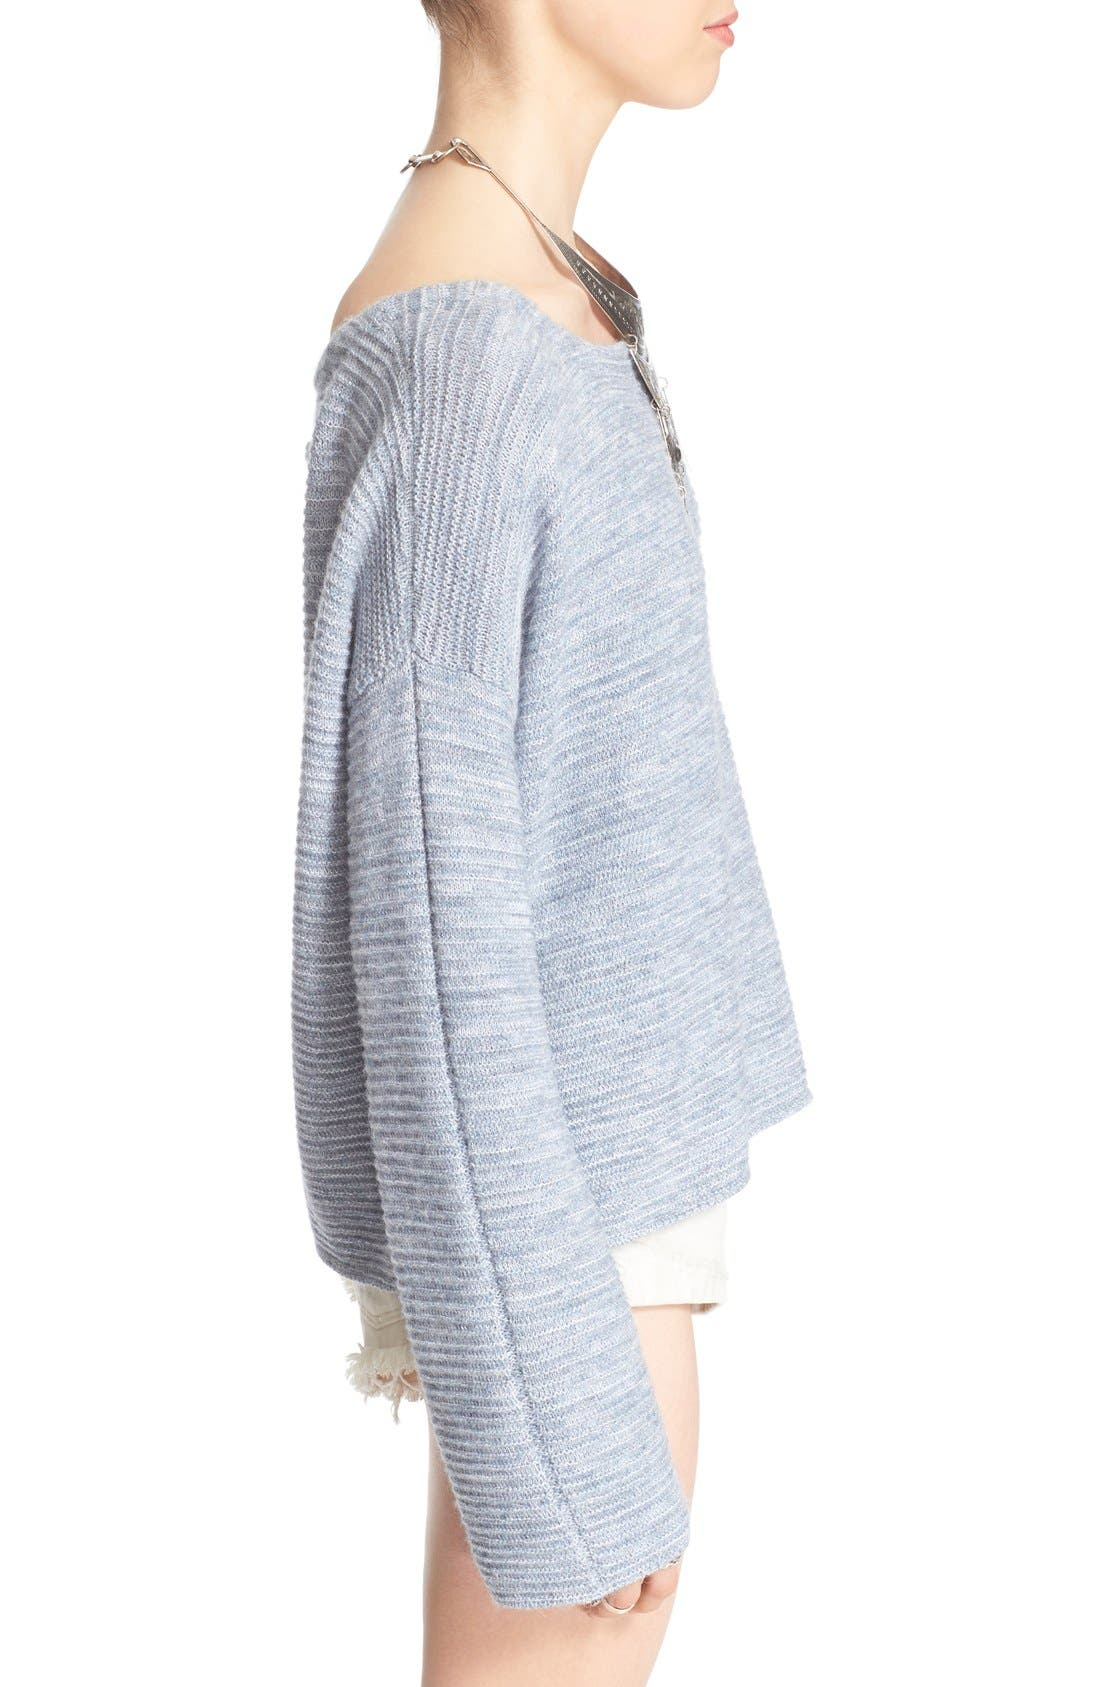 Alternate Image 3  - Free People 'Ever Cozy' Alpaca & Cotton Pullover